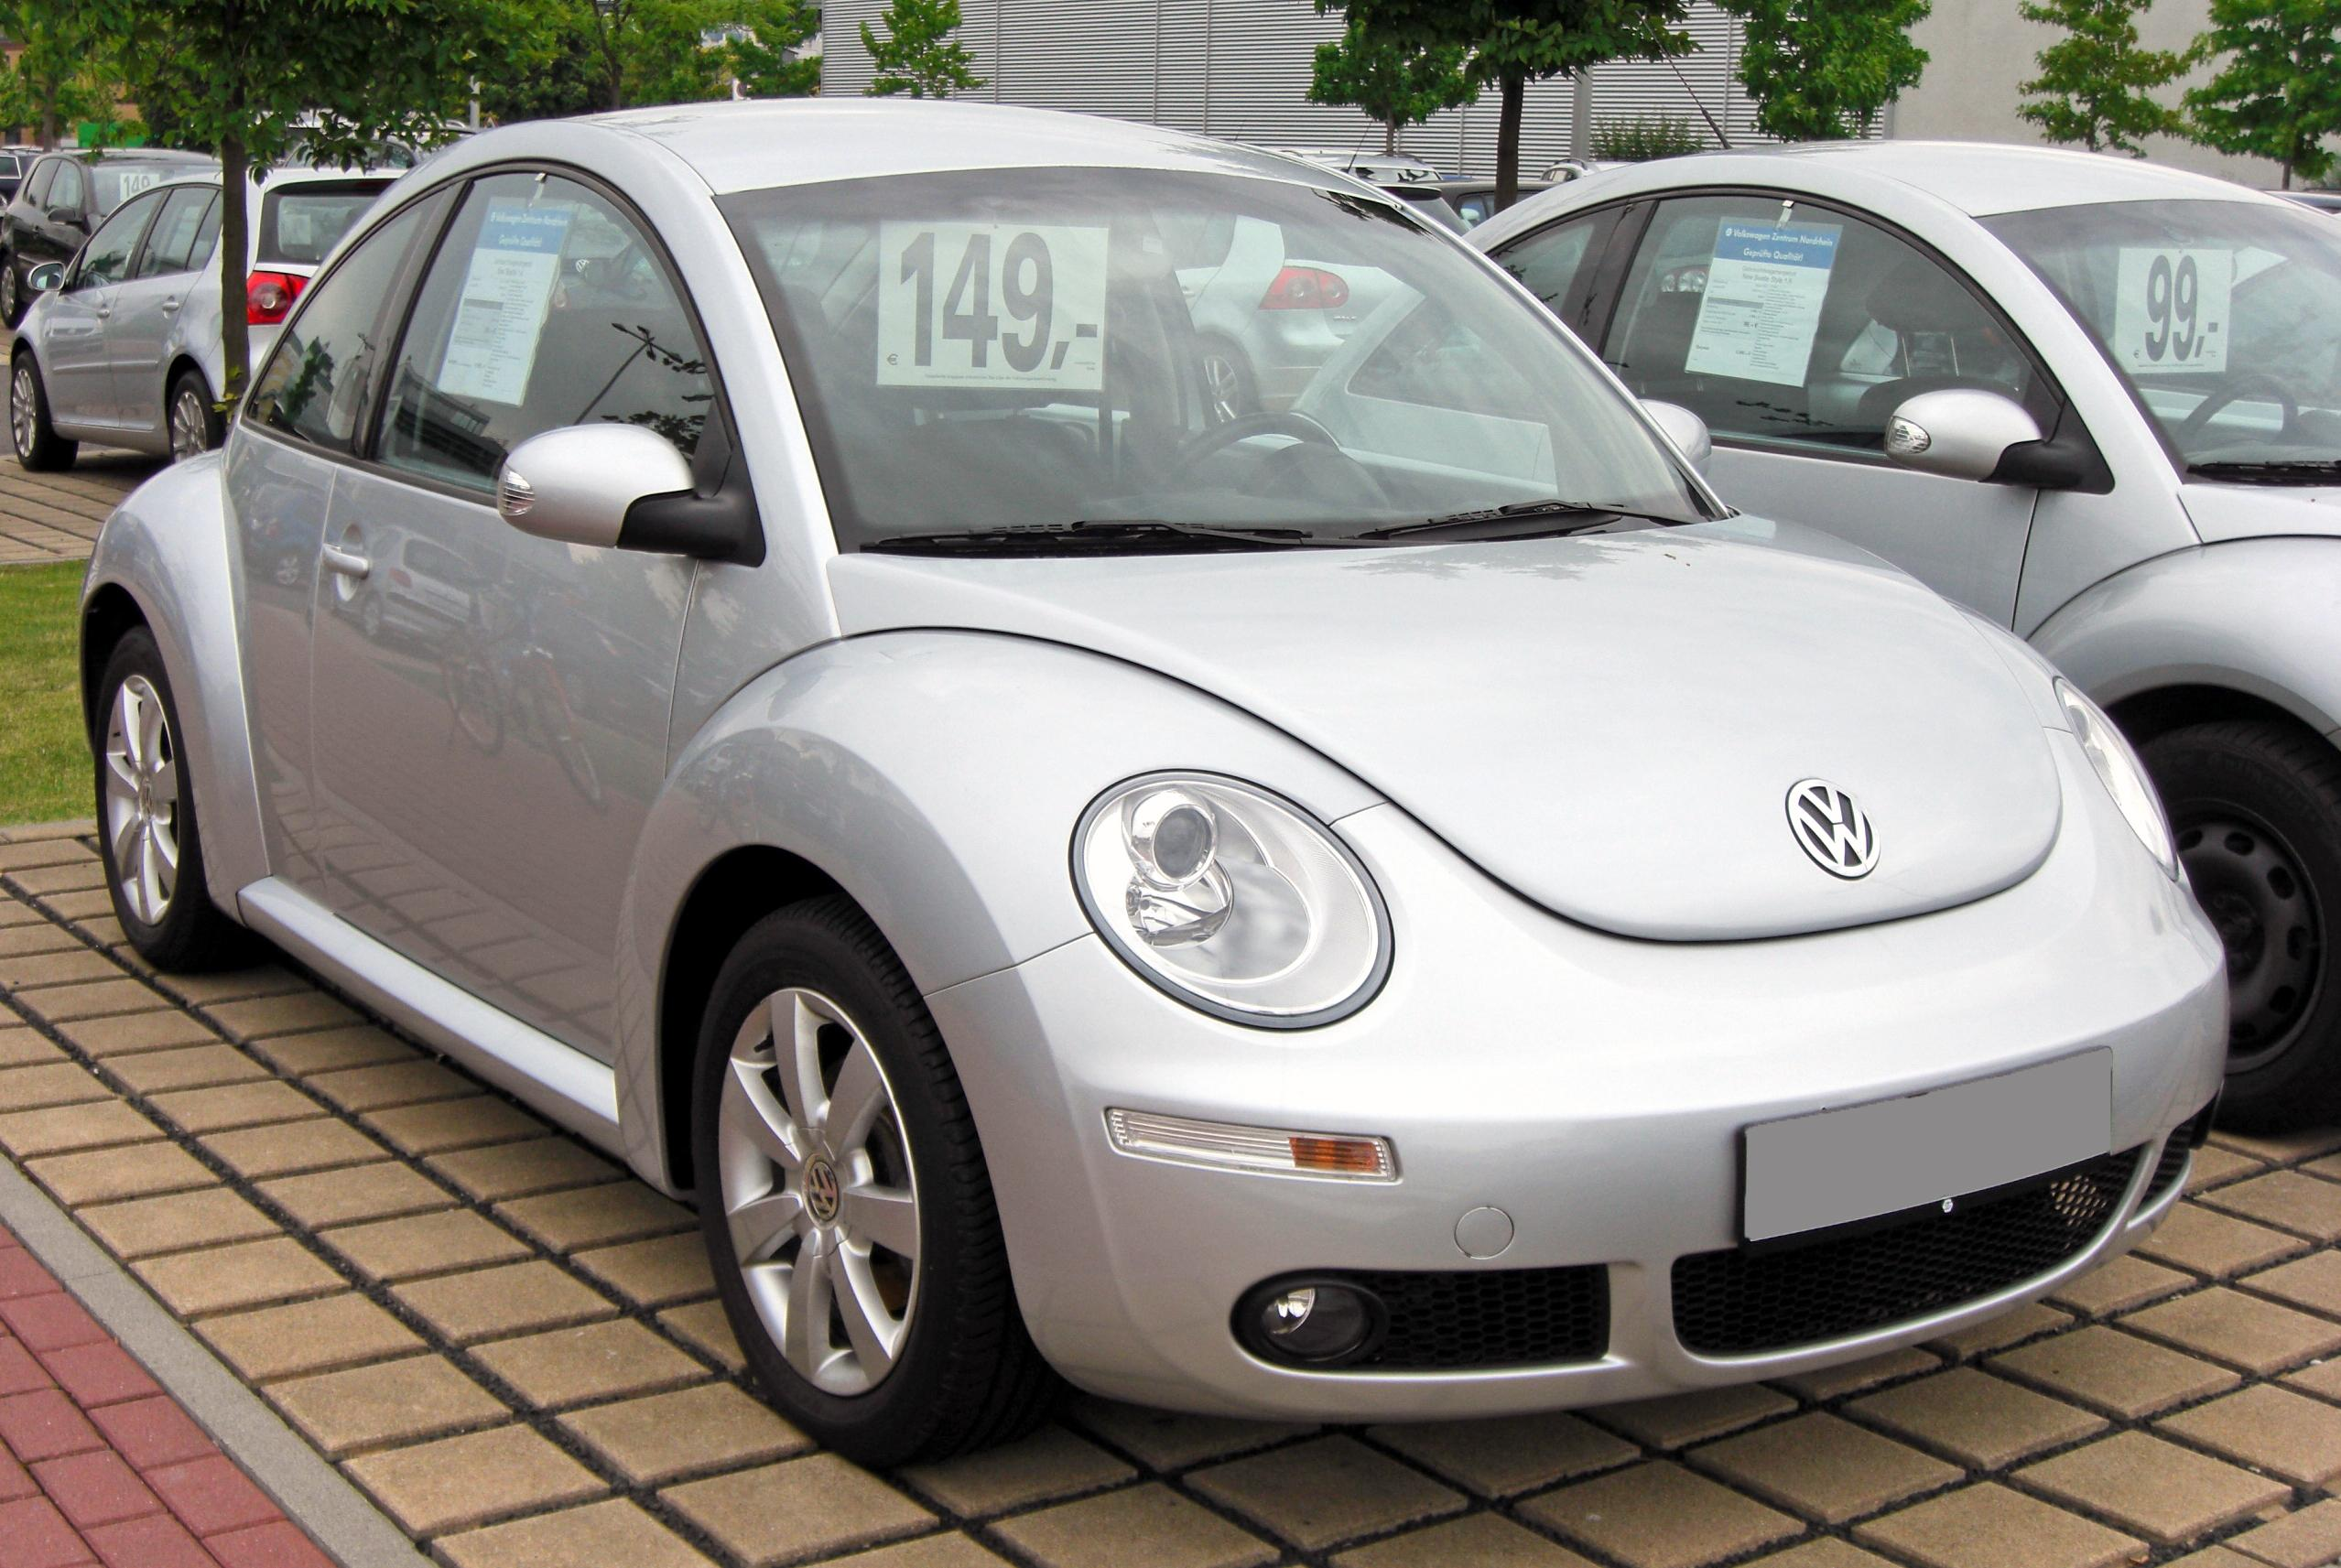 file vw new beetle facelift 20090620 front jpg wikimedia commons. Black Bedroom Furniture Sets. Home Design Ideas